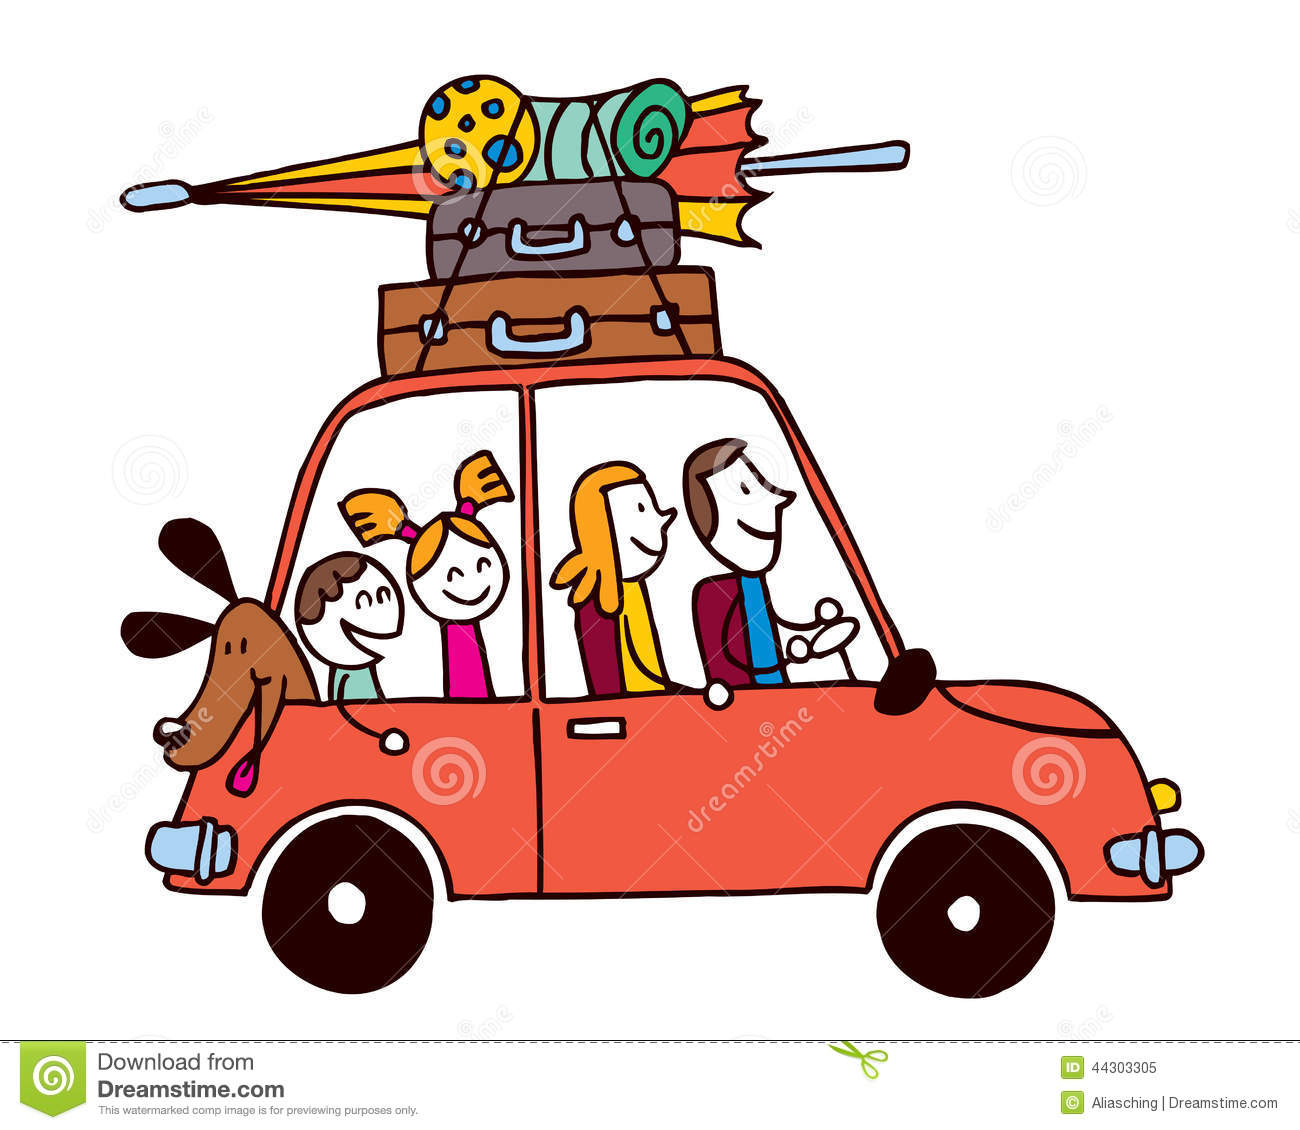 Travel clipart family time Royalty Free Clip Vacation time